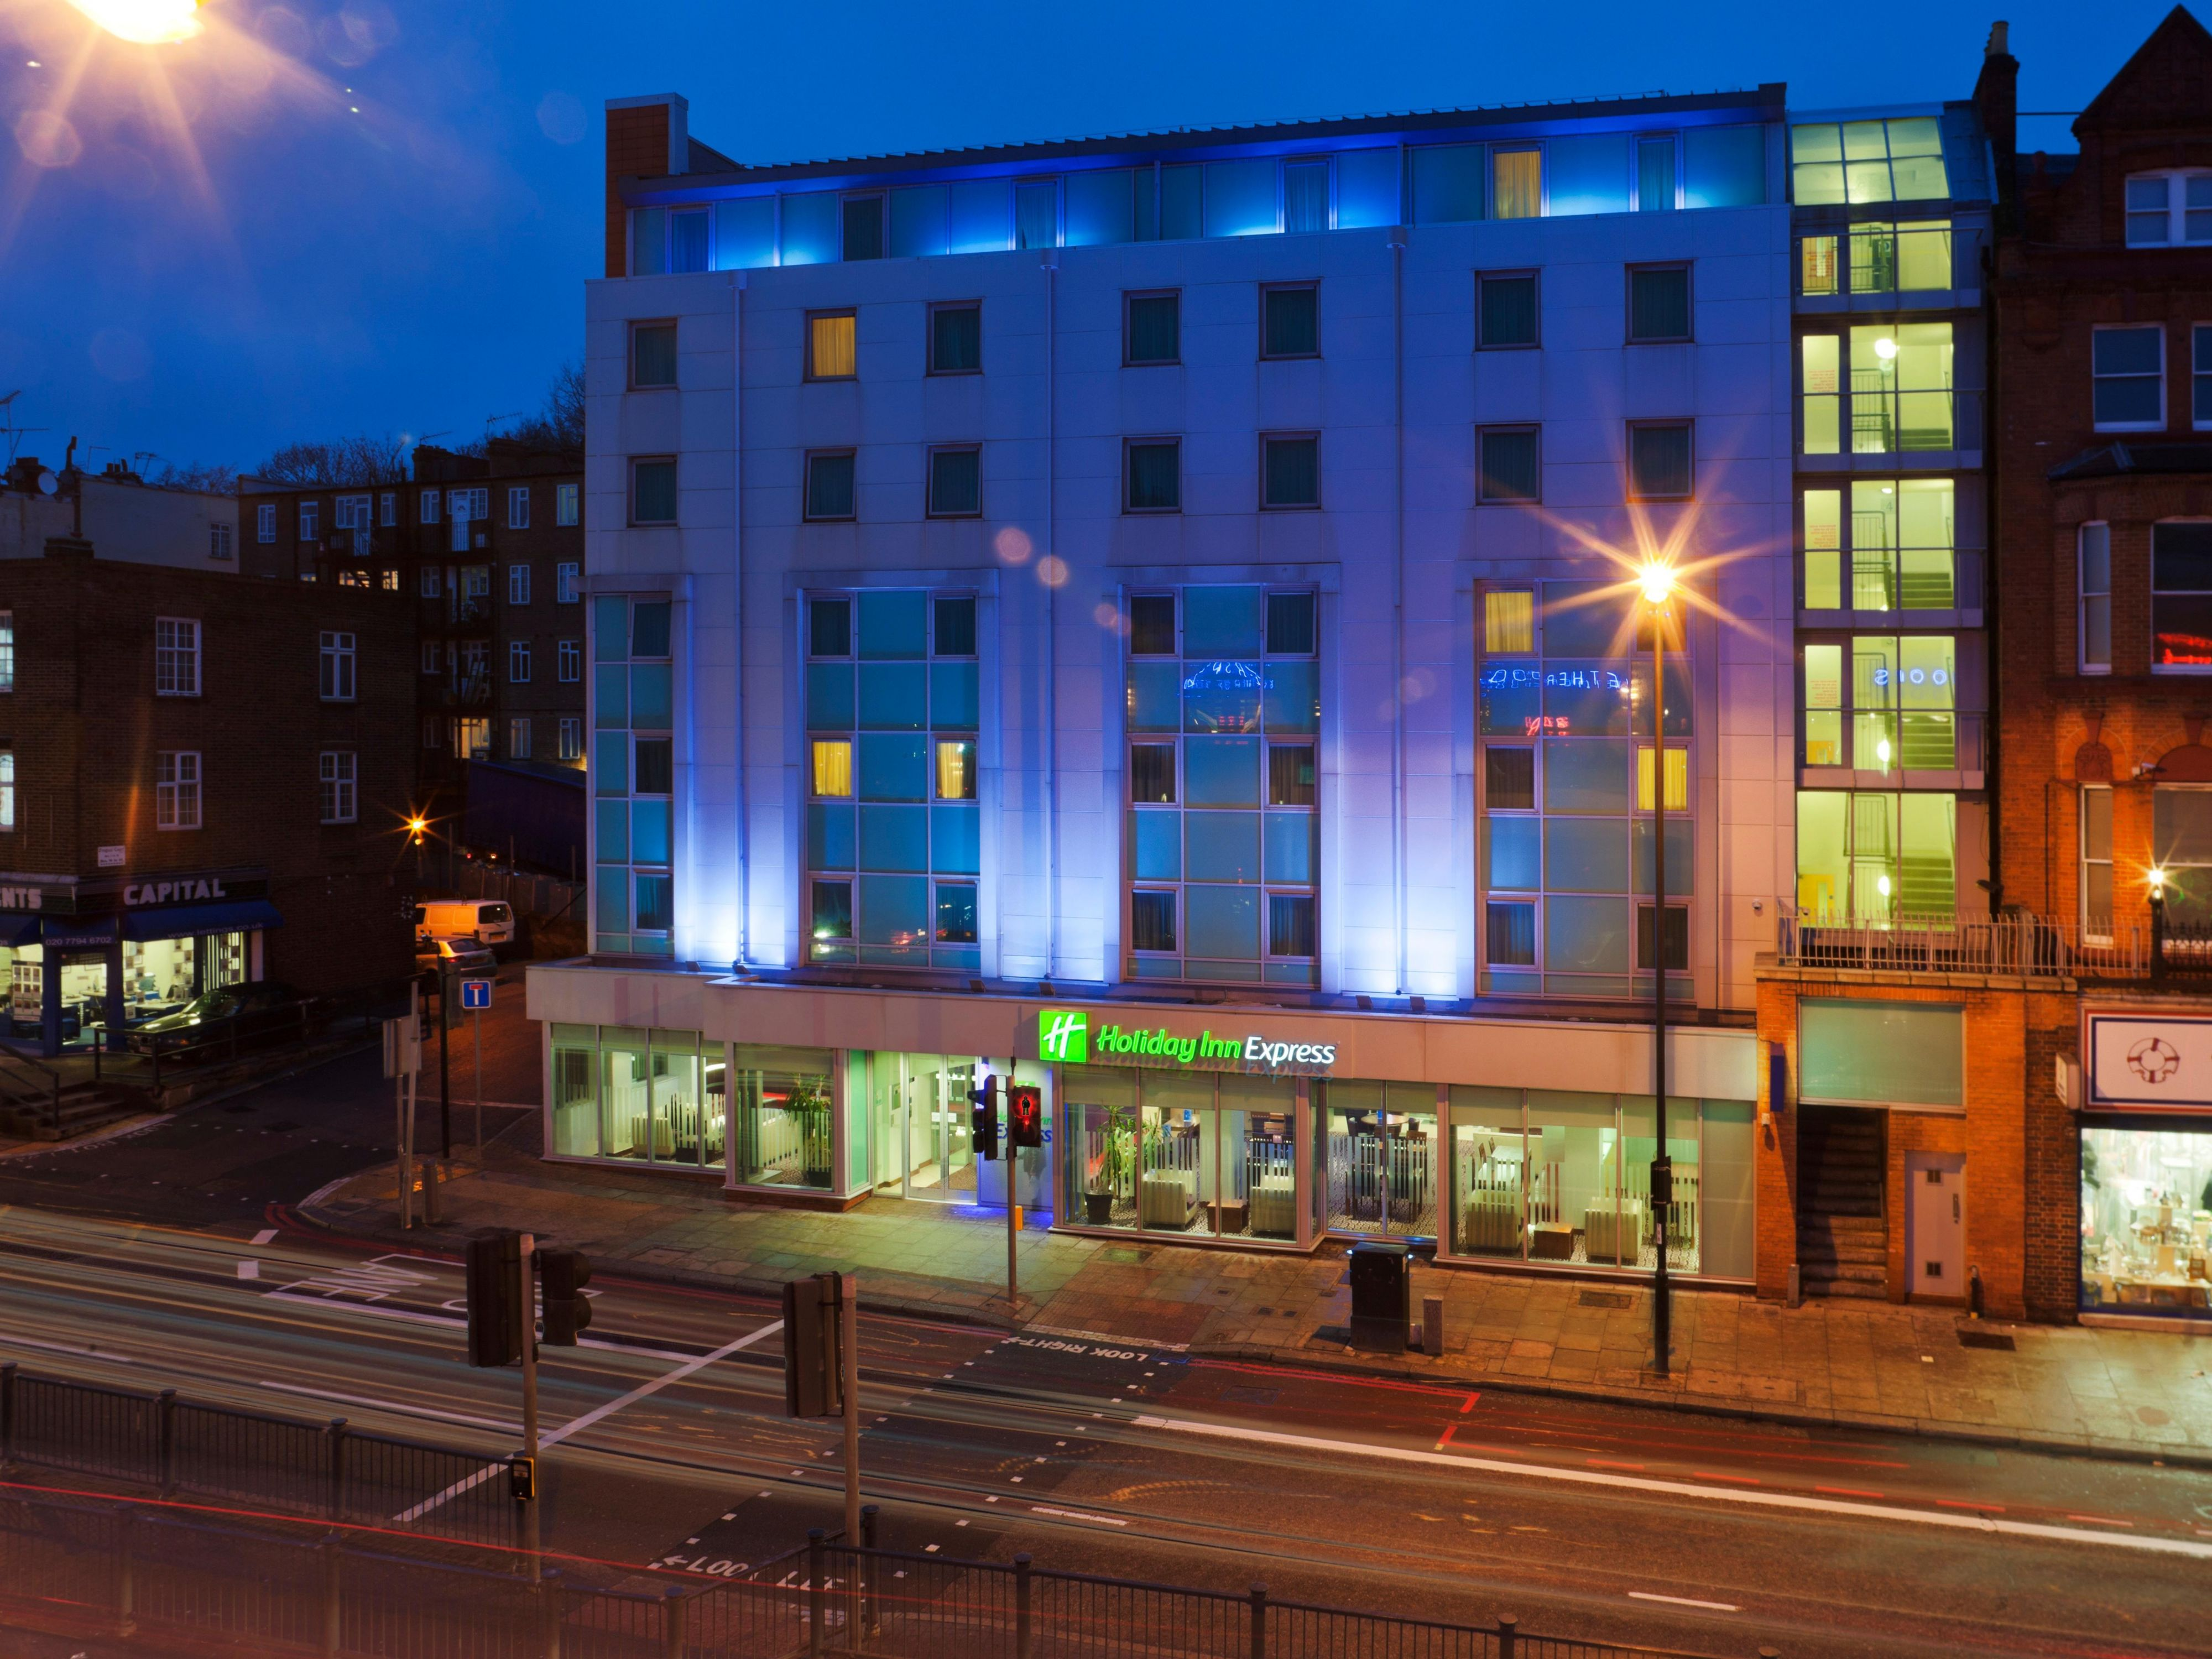 Hotel in the night located on Finchley Road